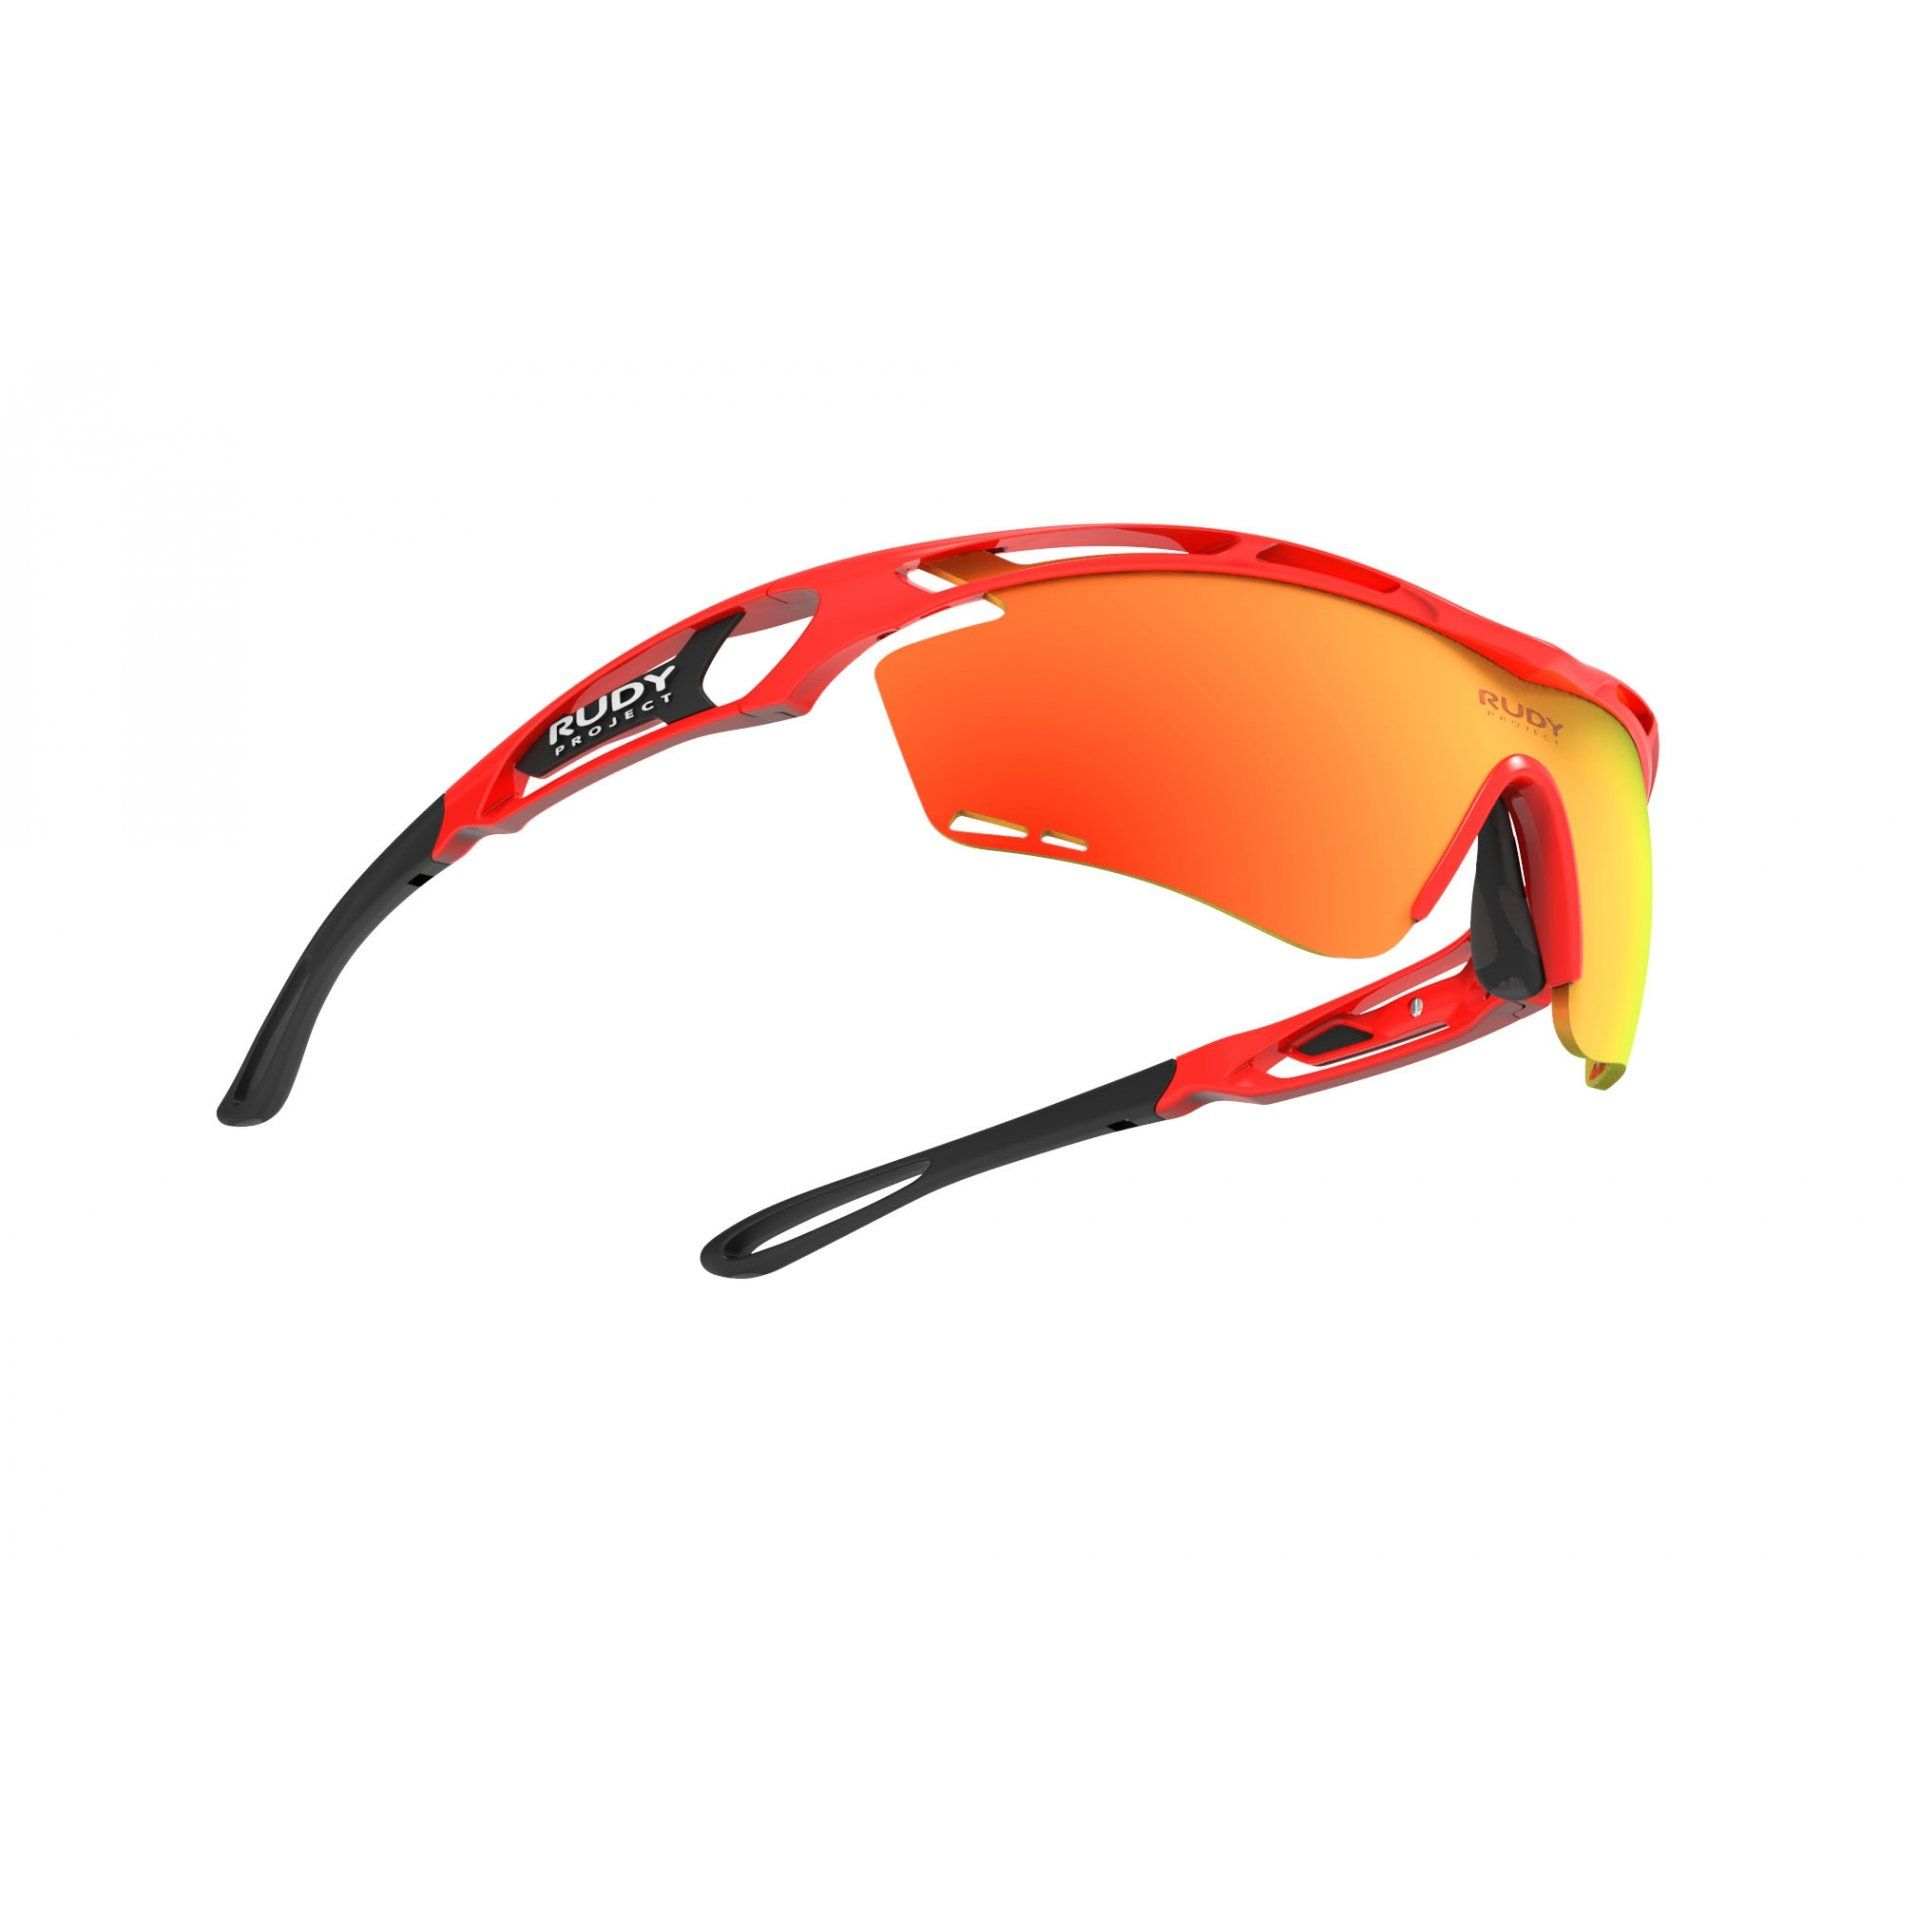 OKULARY RUDY PROJECT TRALYX RED FLUO+MULTILASER ORANGE 3